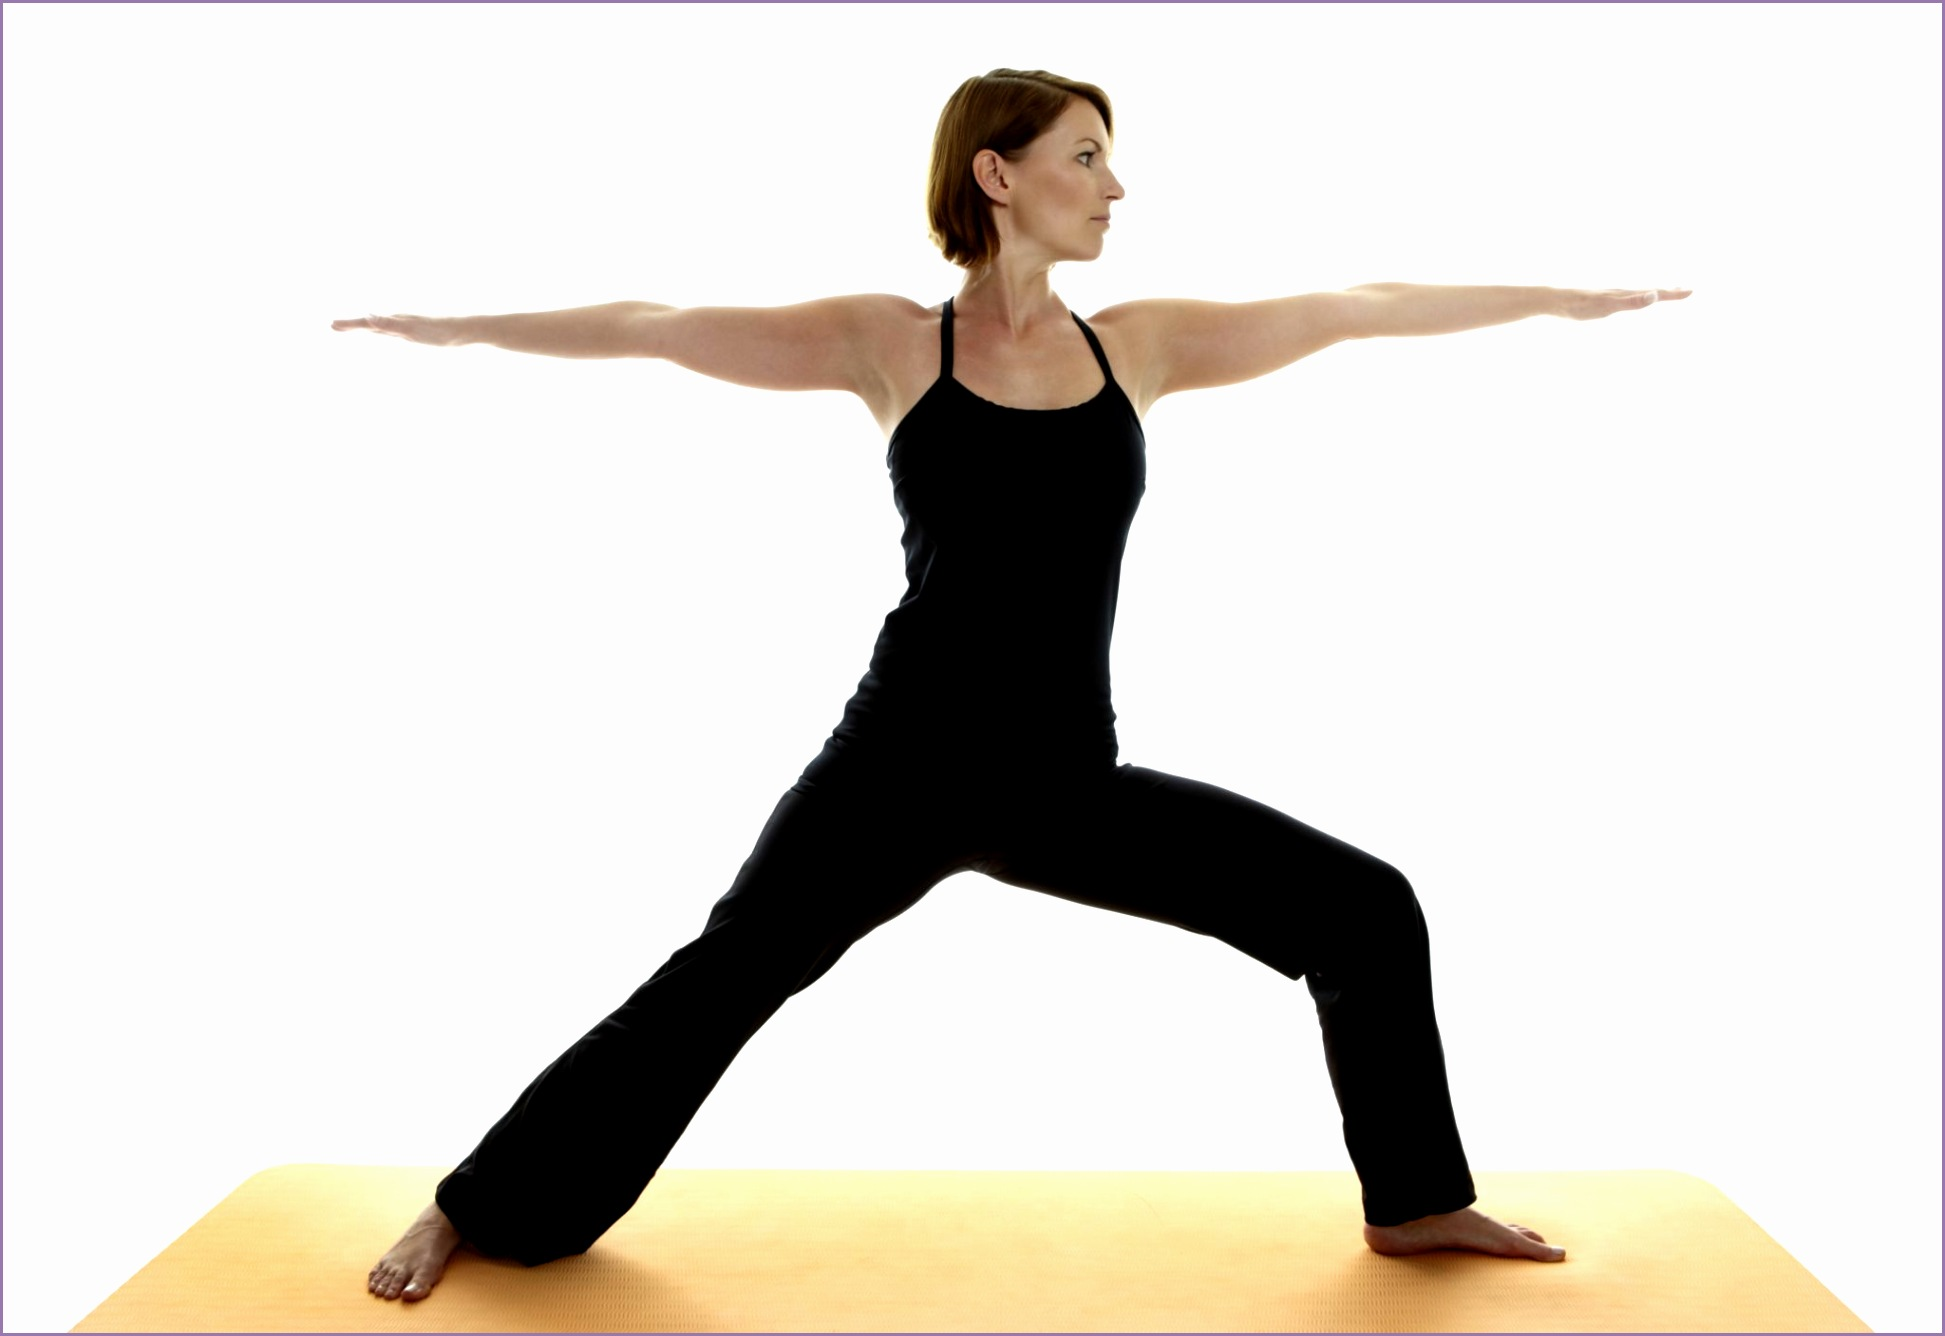 yoga poses strength warrior pose 2 virabhadrasana 2